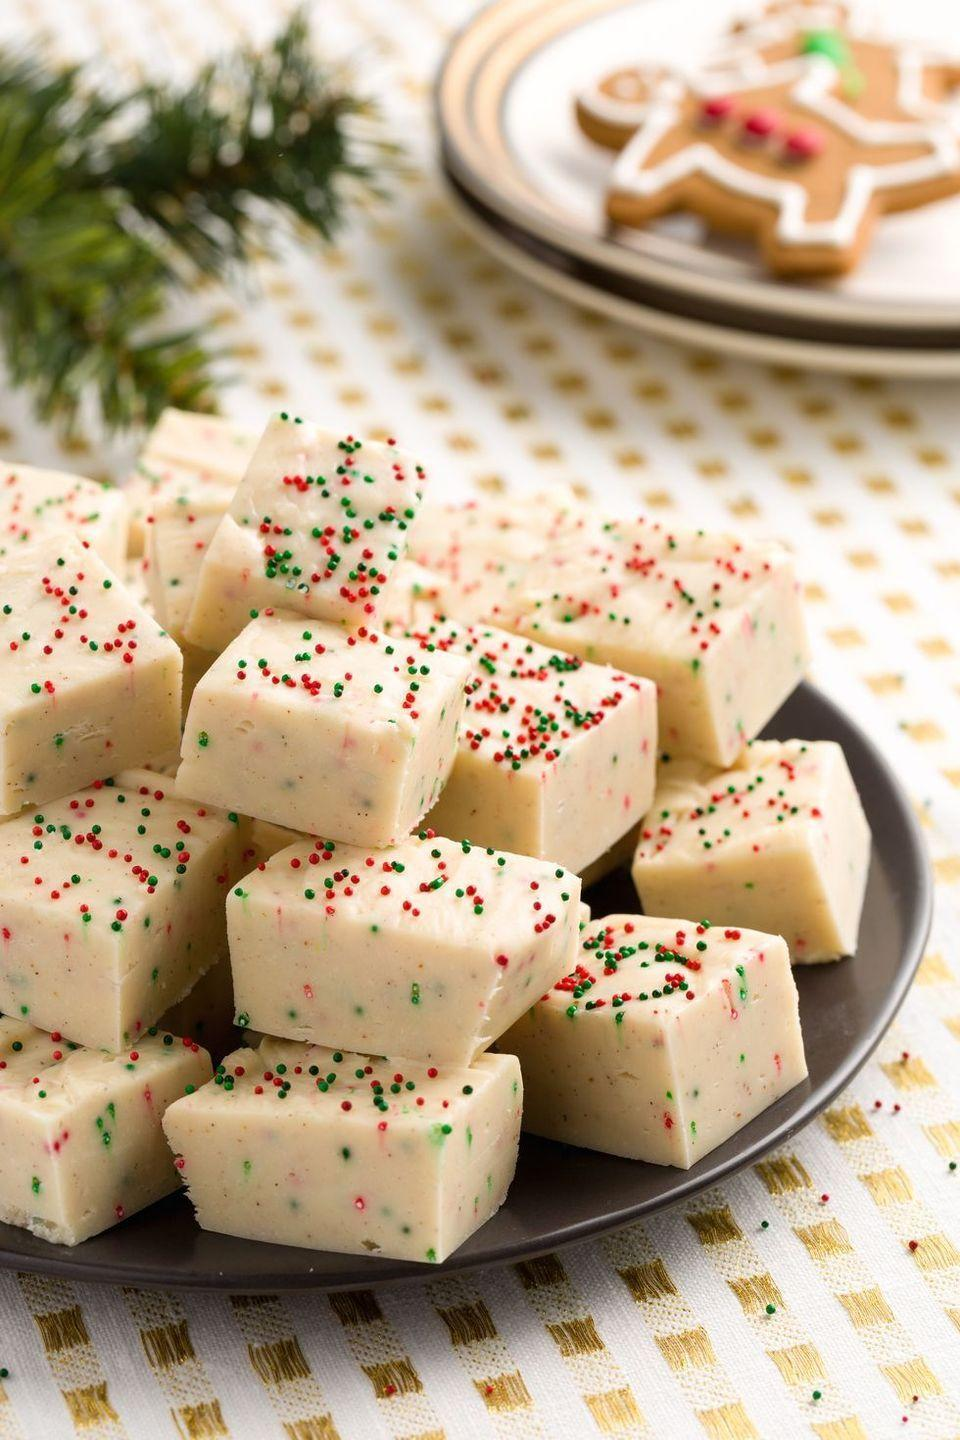 """<p>Here's a treat that'll make you wish you could reach through your screen and try a bite. <em>Yum. </em>Our favorite part? Those adorable, Christmas-themed sprinkles.</p><p><strong>Get the recipe at <a href=""""https://www.delish.com/cooking/recipe-ideas/recipes/a45064/gingerbread-fudge-recipe/"""" rel=""""nofollow noopener"""" target=""""_blank"""" data-ylk=""""slk:Delish"""" class=""""link rapid-noclick-resp"""">Delish</a>.</strong></p><p><strong><a class=""""link rapid-noclick-resp"""" href=""""https://www.amazon.com/s?k=white+chocolate+chips&i=grocery&ref=nb_sb_noss_2&tag=syn-yahoo-20&ascsubtag=%5Bartid%7C10050.g.645%5Bsrc%7Cyahoo-us"""" rel=""""nofollow noopener"""" target=""""_blank"""" data-ylk=""""slk:SHOP WHITE CHOCOLATE CHIPS"""">SHOP WHITE CHOCOLATE CHIPS</a><br></strong></p>"""